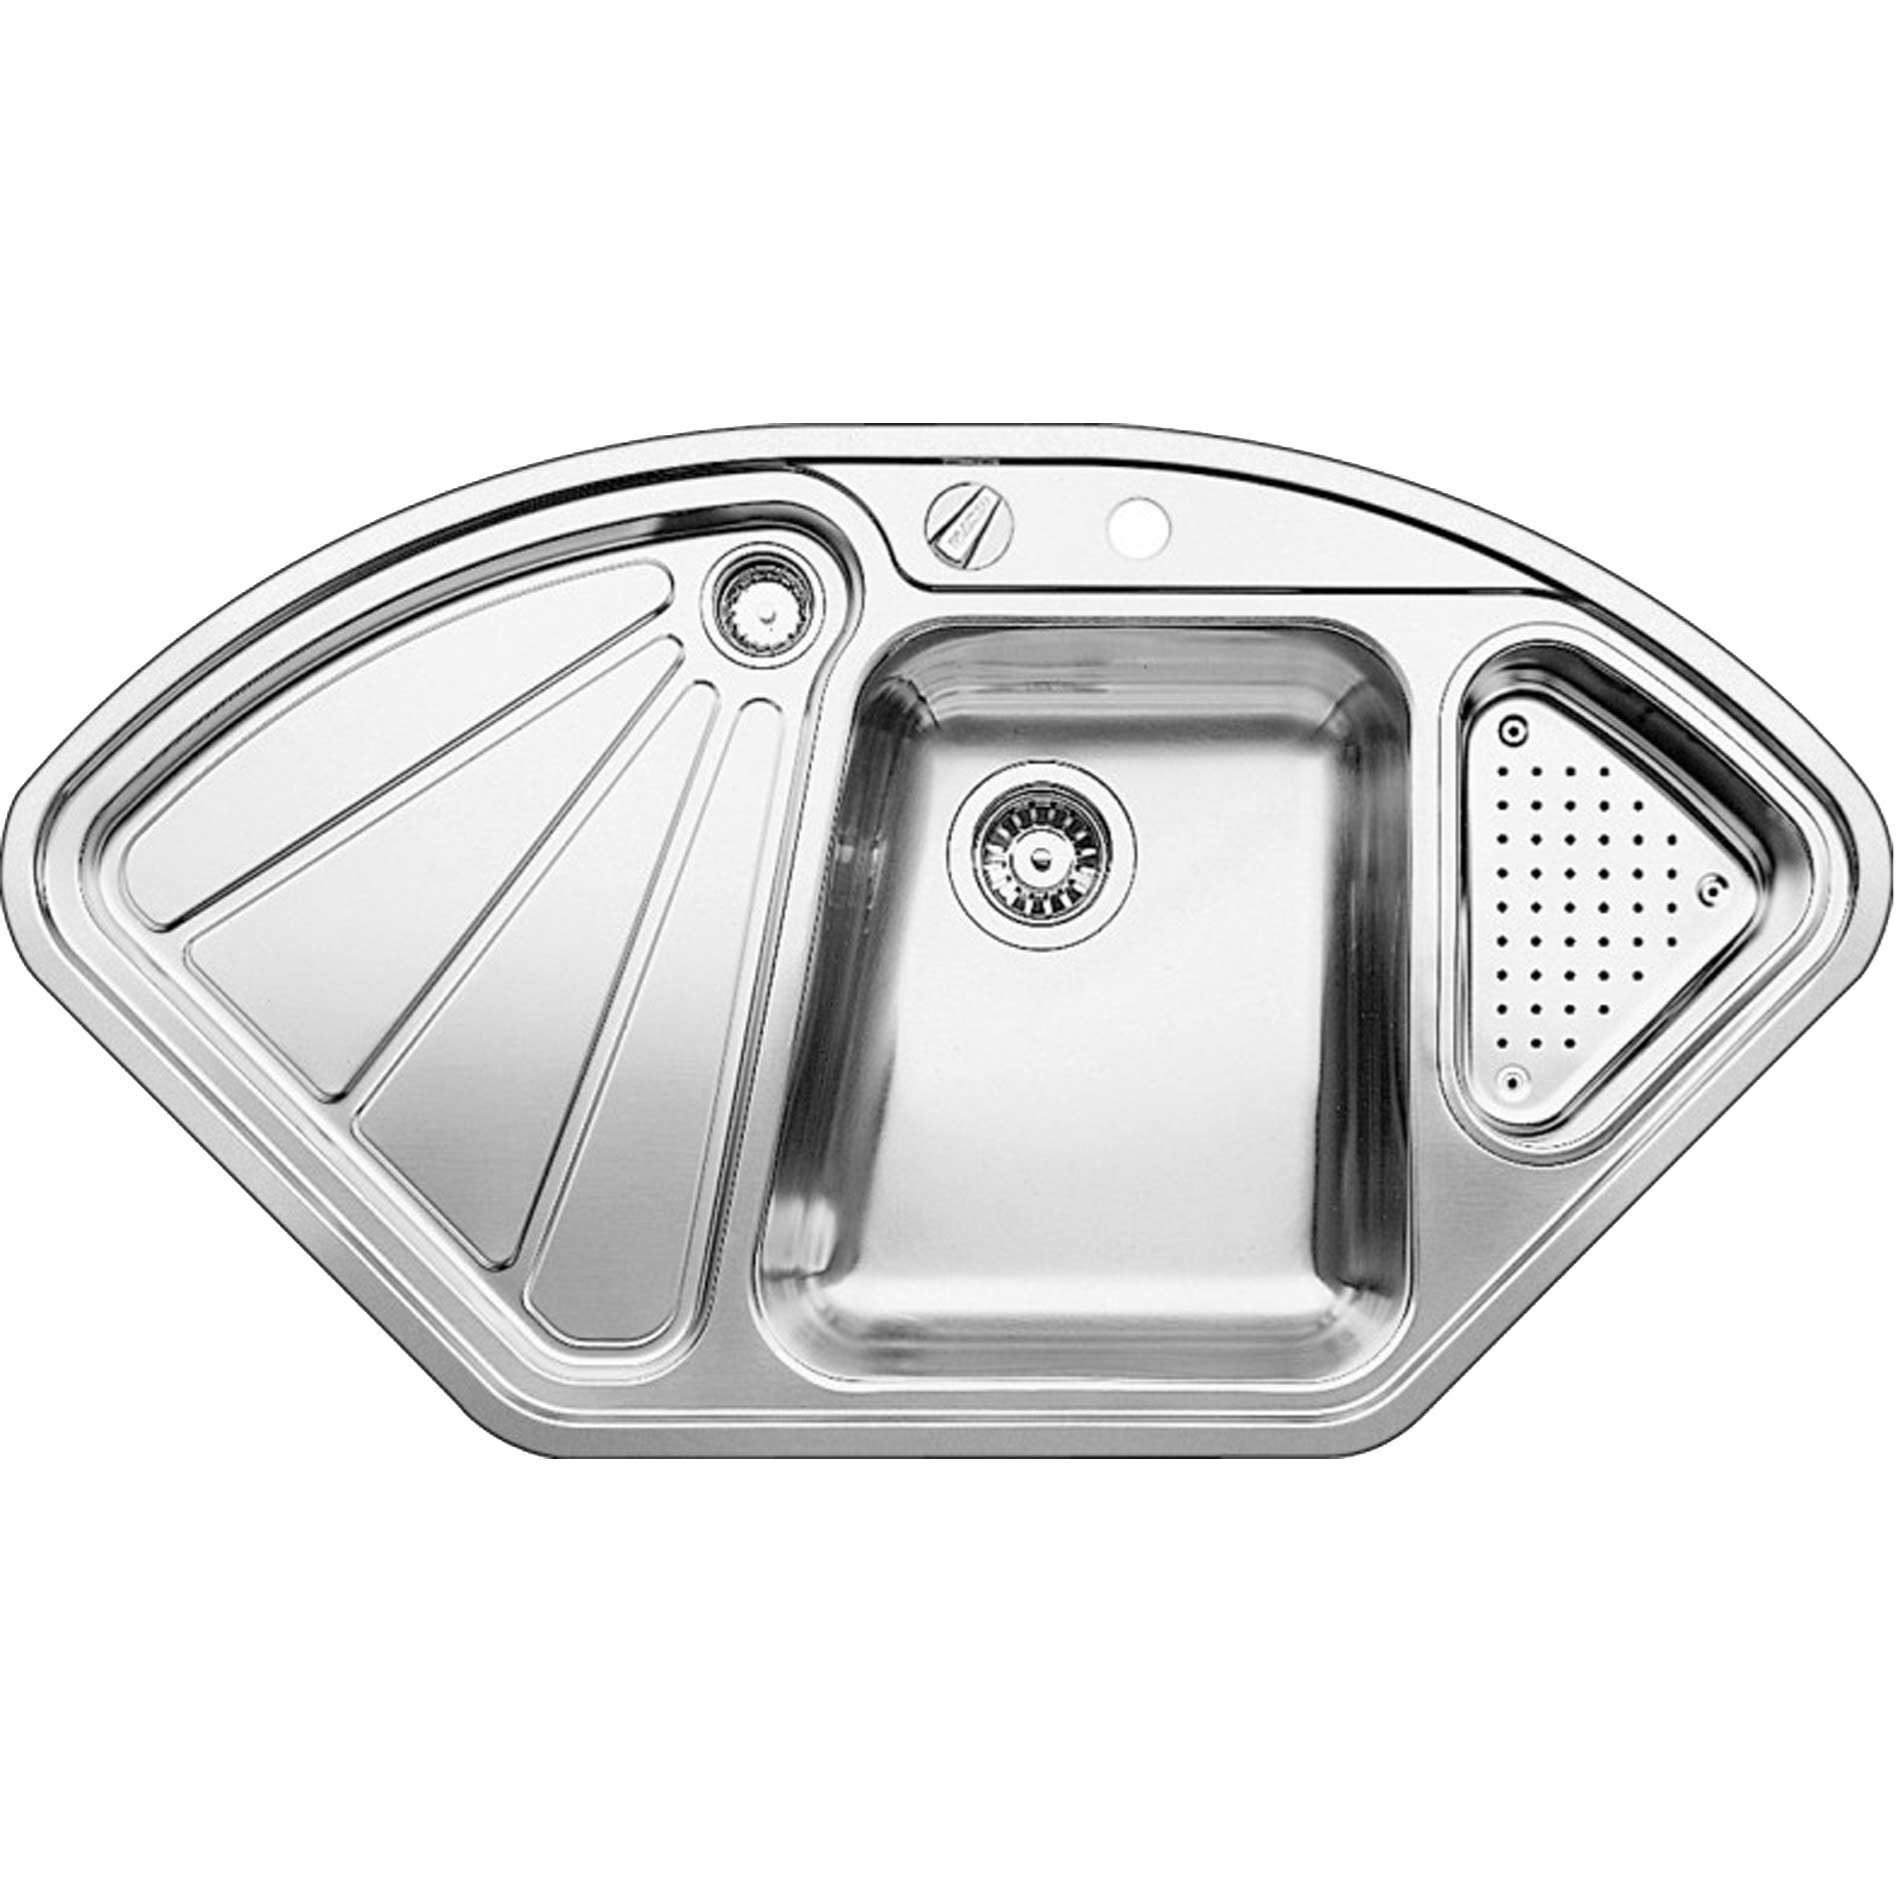 Picture of Delta IF Stainless Steel Sink